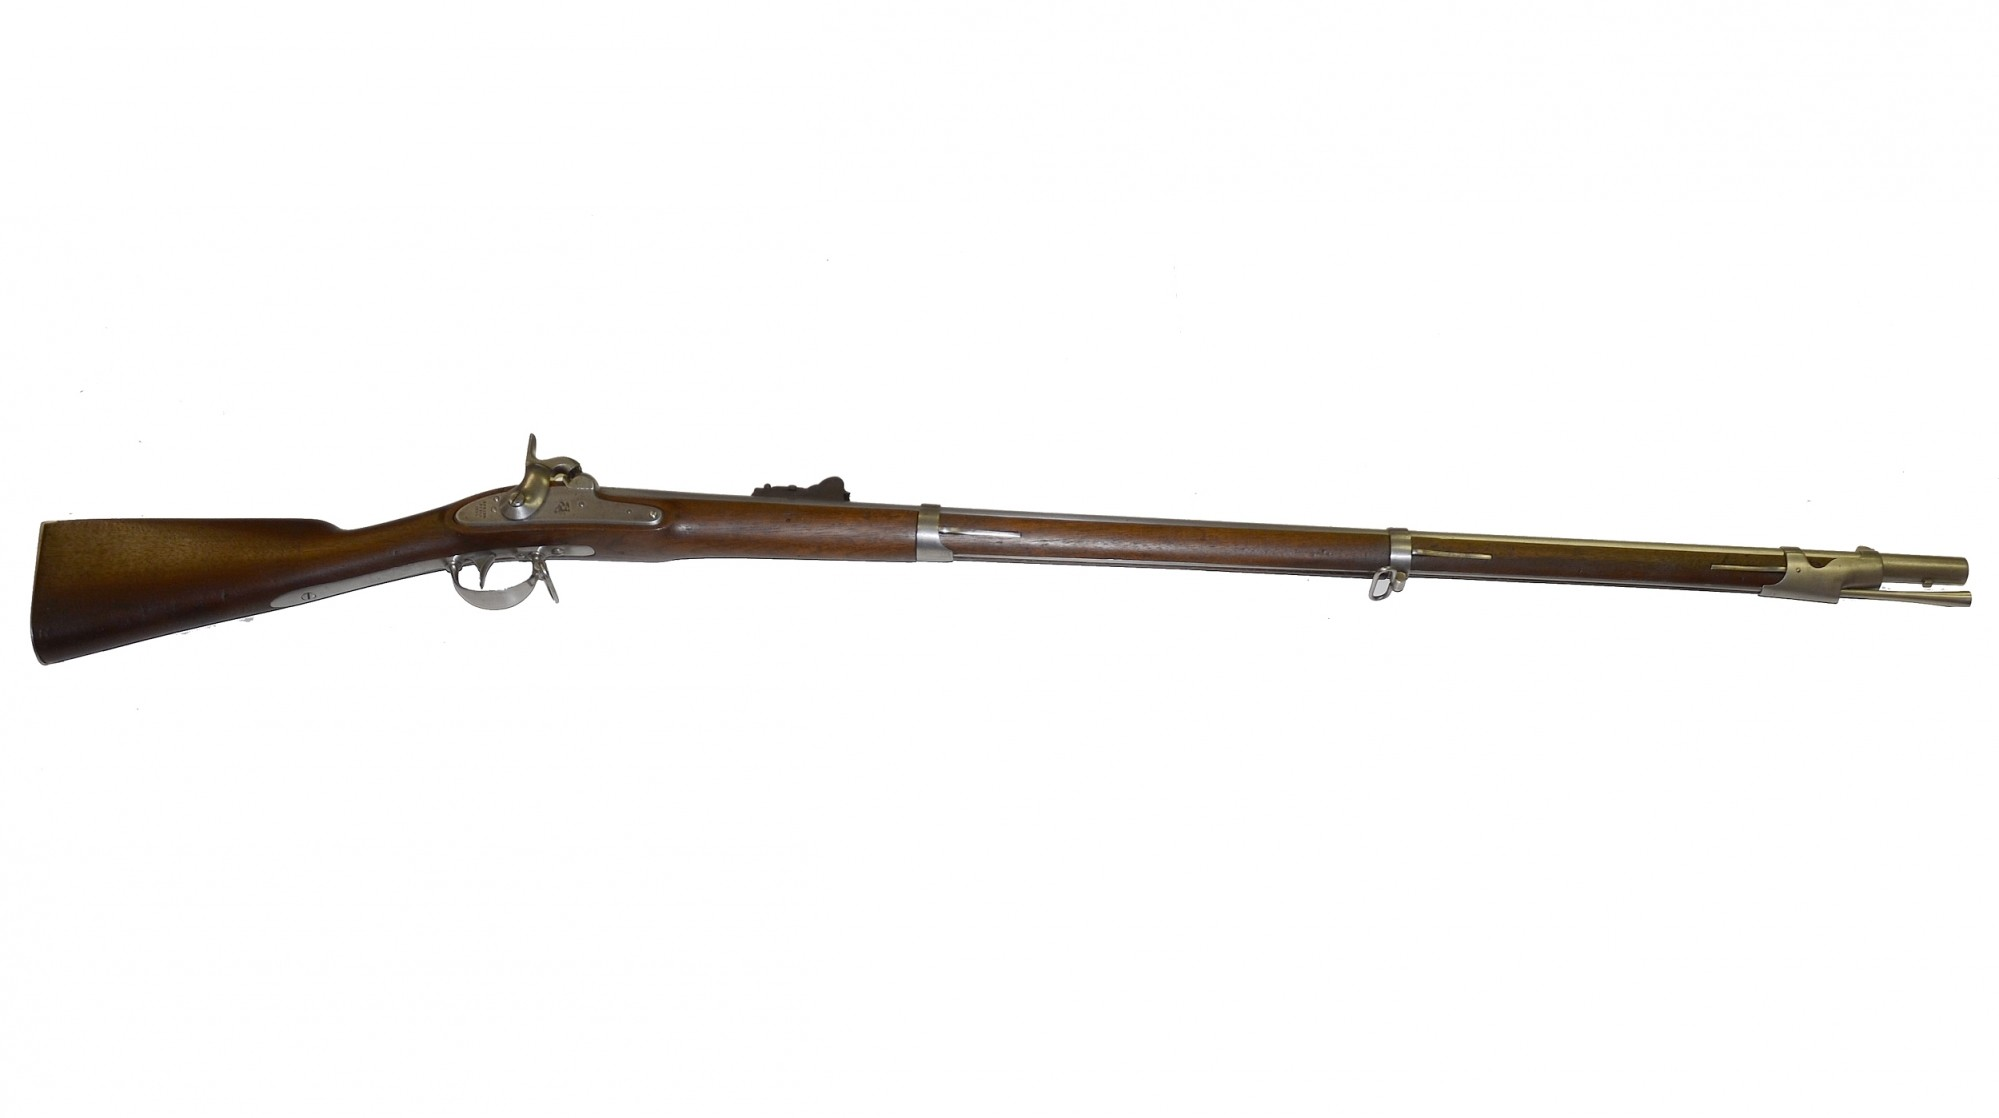 SPRINGFIELD M1842 PERCUSSION MUSKET DATED 1851